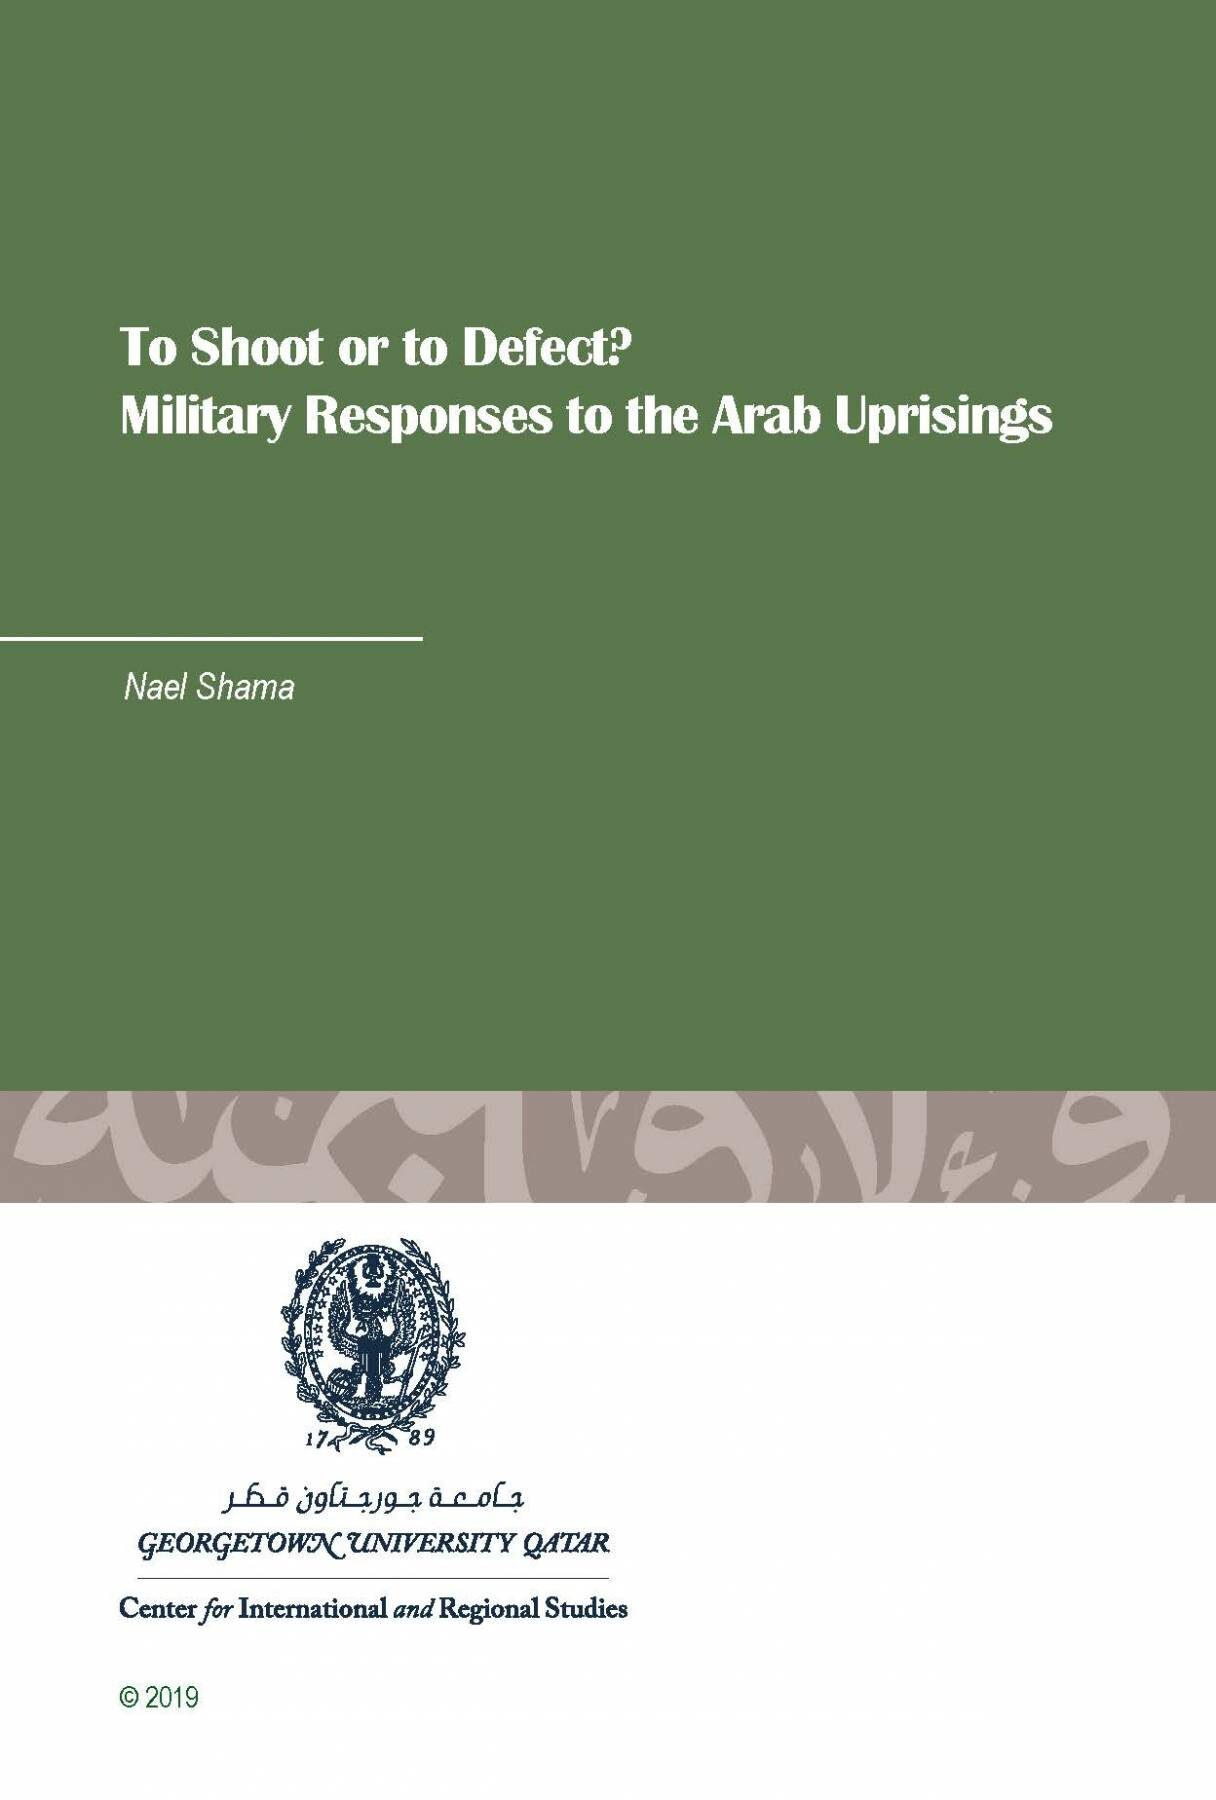 To Shoot or to Defect? Military Responses to the Arab Uprisings